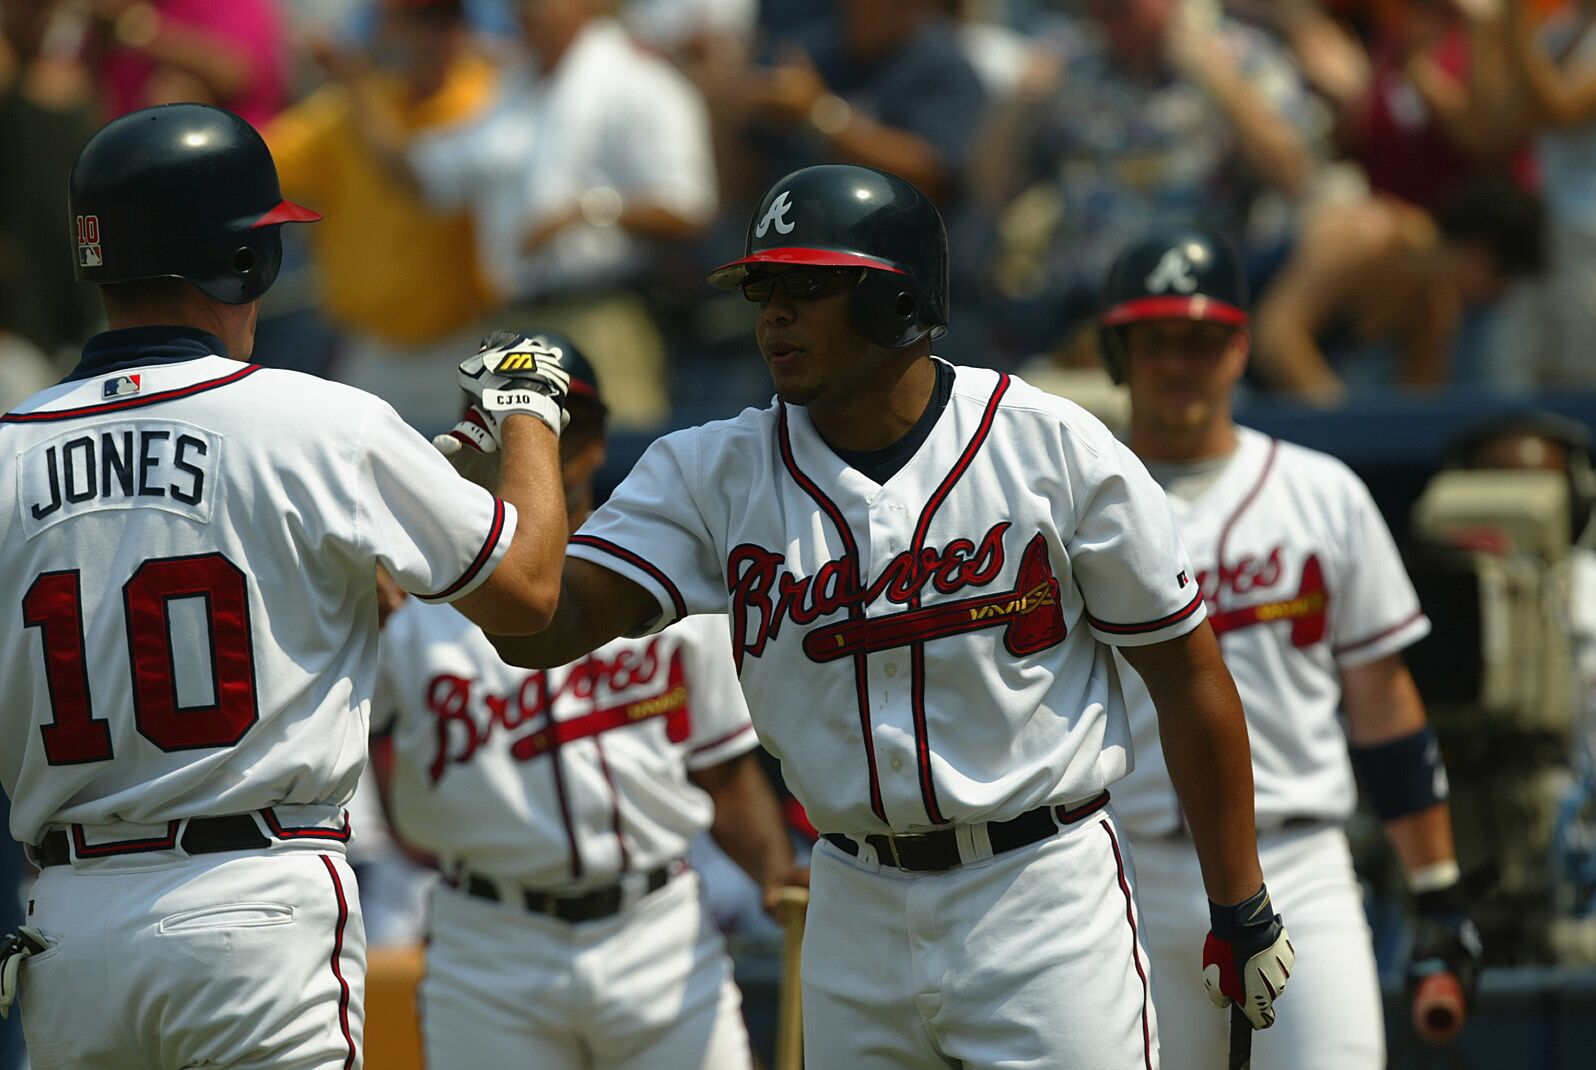 ATLANTA - SEPTEMBER 11: Left fielder Chipper Jones #10 of the Atlanta Braves receives congratulations from center fielder Andruw Jones #25 after one of his two home runs during the first game of a MLB double-header against the New York Mets on September 11, 2002 at Turner Field in Atlanta, Georgia. The Braves won 8-5. (Photo by Jamie Squire/Getty Images)